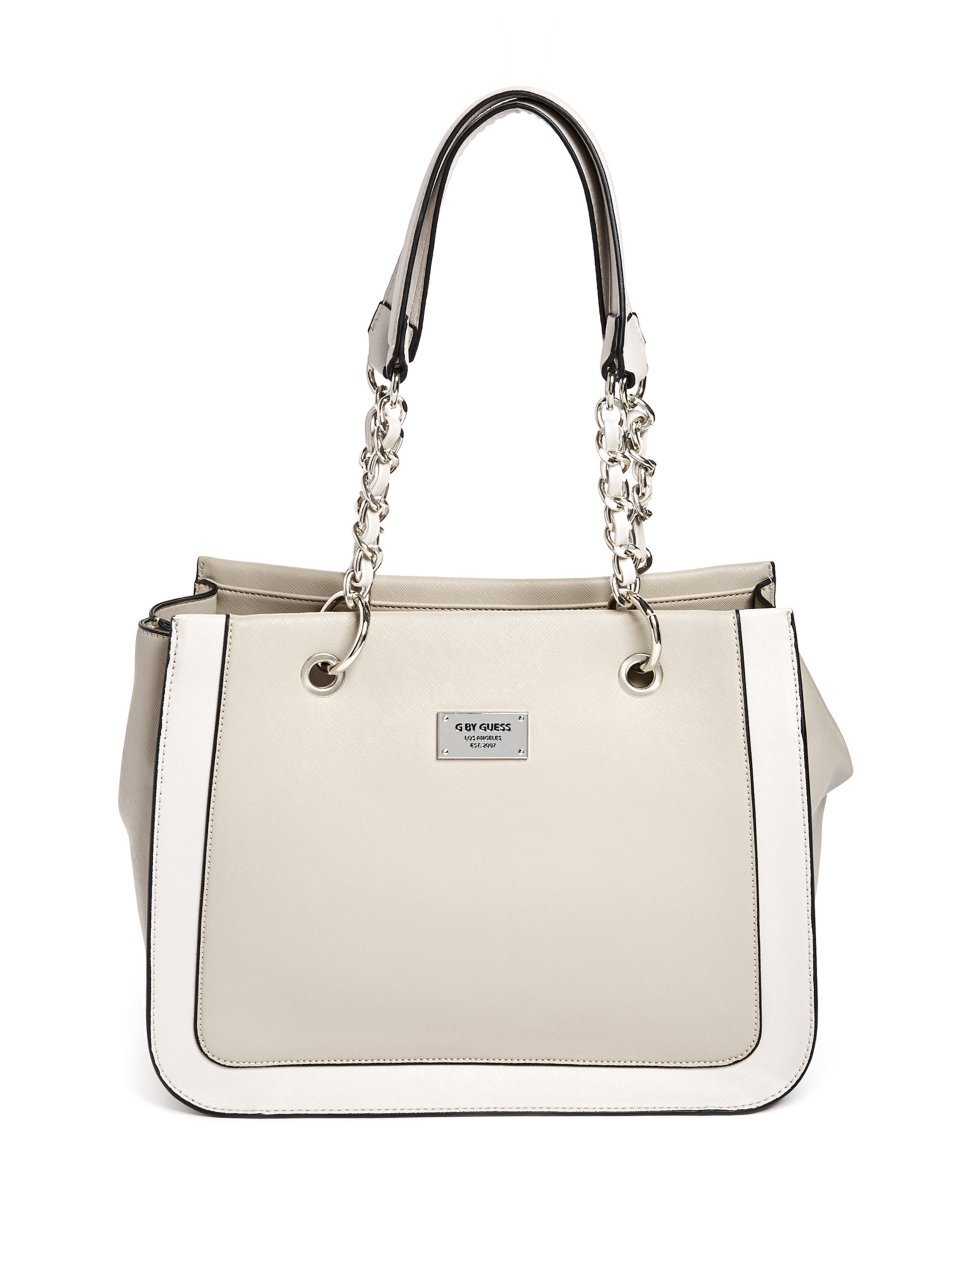 G by GUESS Women's Ramsey Large Chain-Strap Satchel